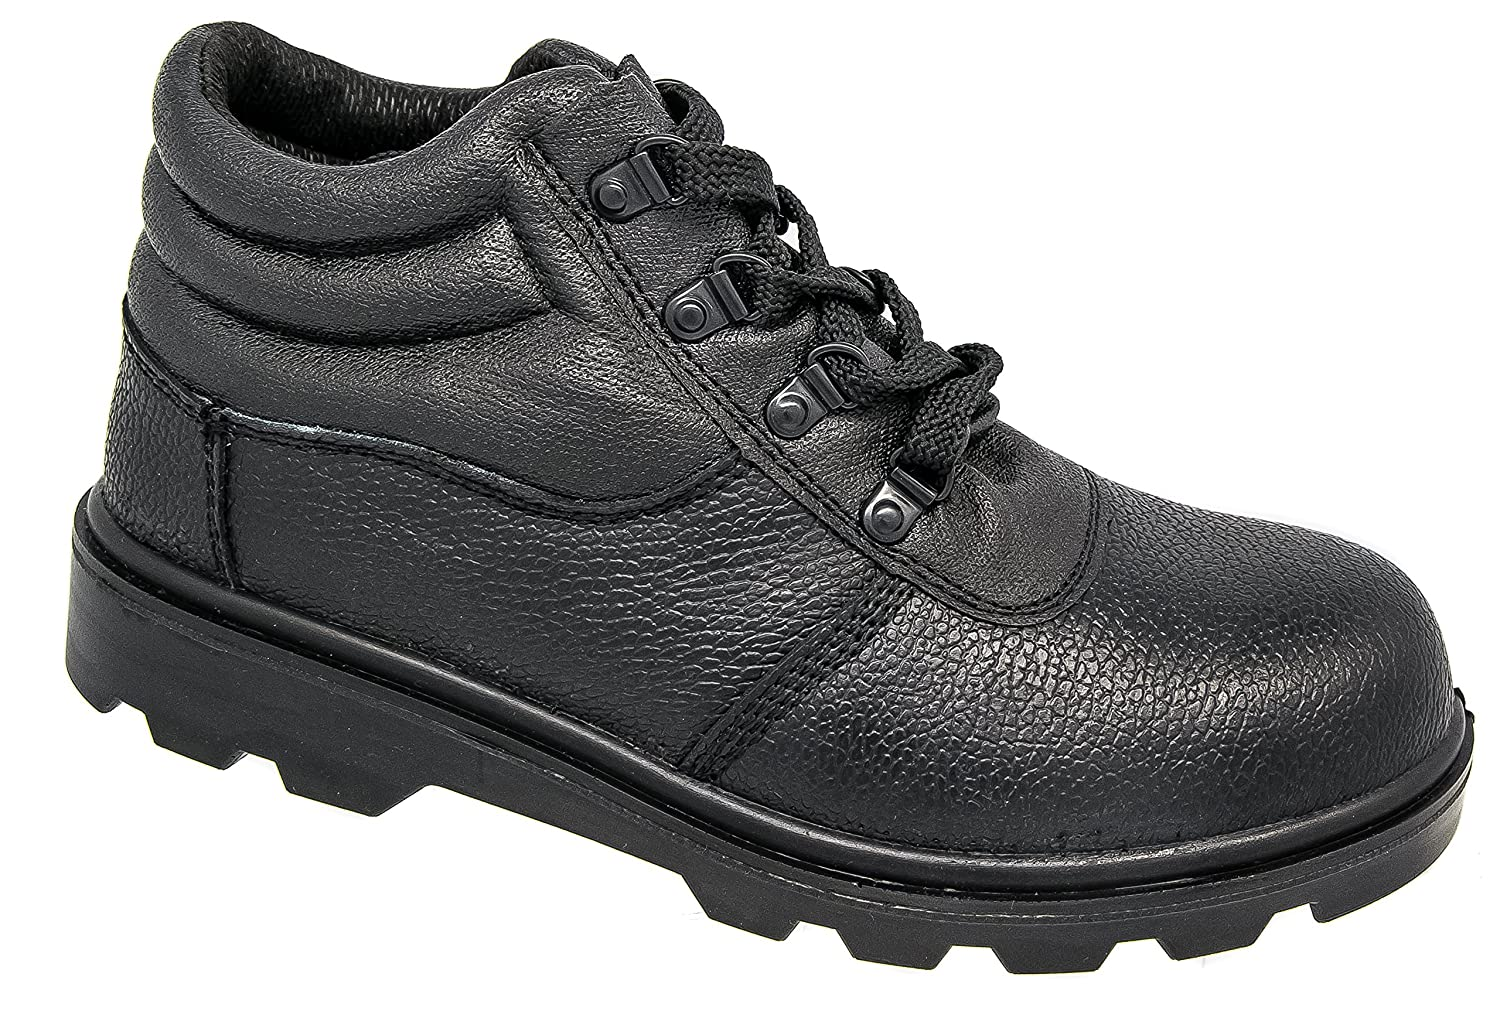 Mens Grafters Black Leather Padded Lightweight Safety Toe Cap Work Boots:  Amazon.co.uk: Shoes & Bags